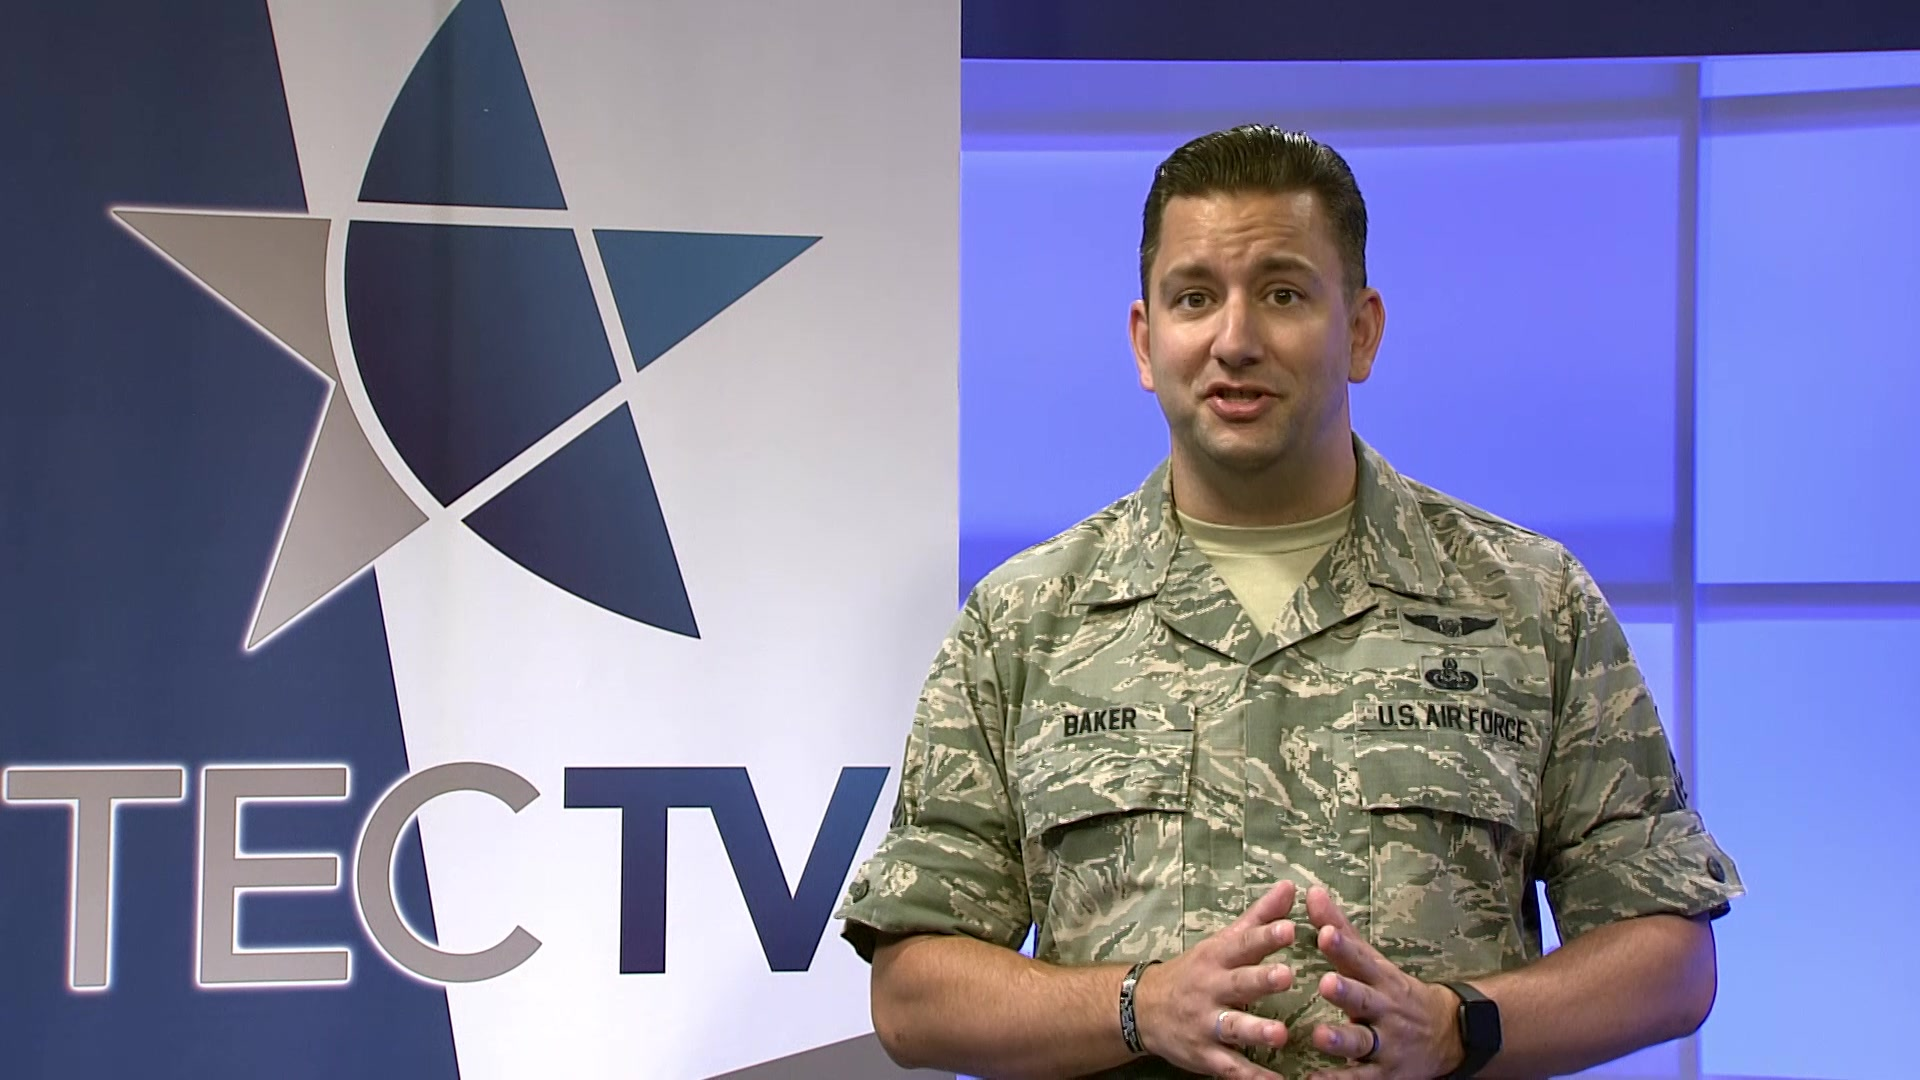 A brief video highlighting the benefits of the CCAF Degree program.  It features MSgt Thomas Baker offering a few reasons why you should complete your CCAF.